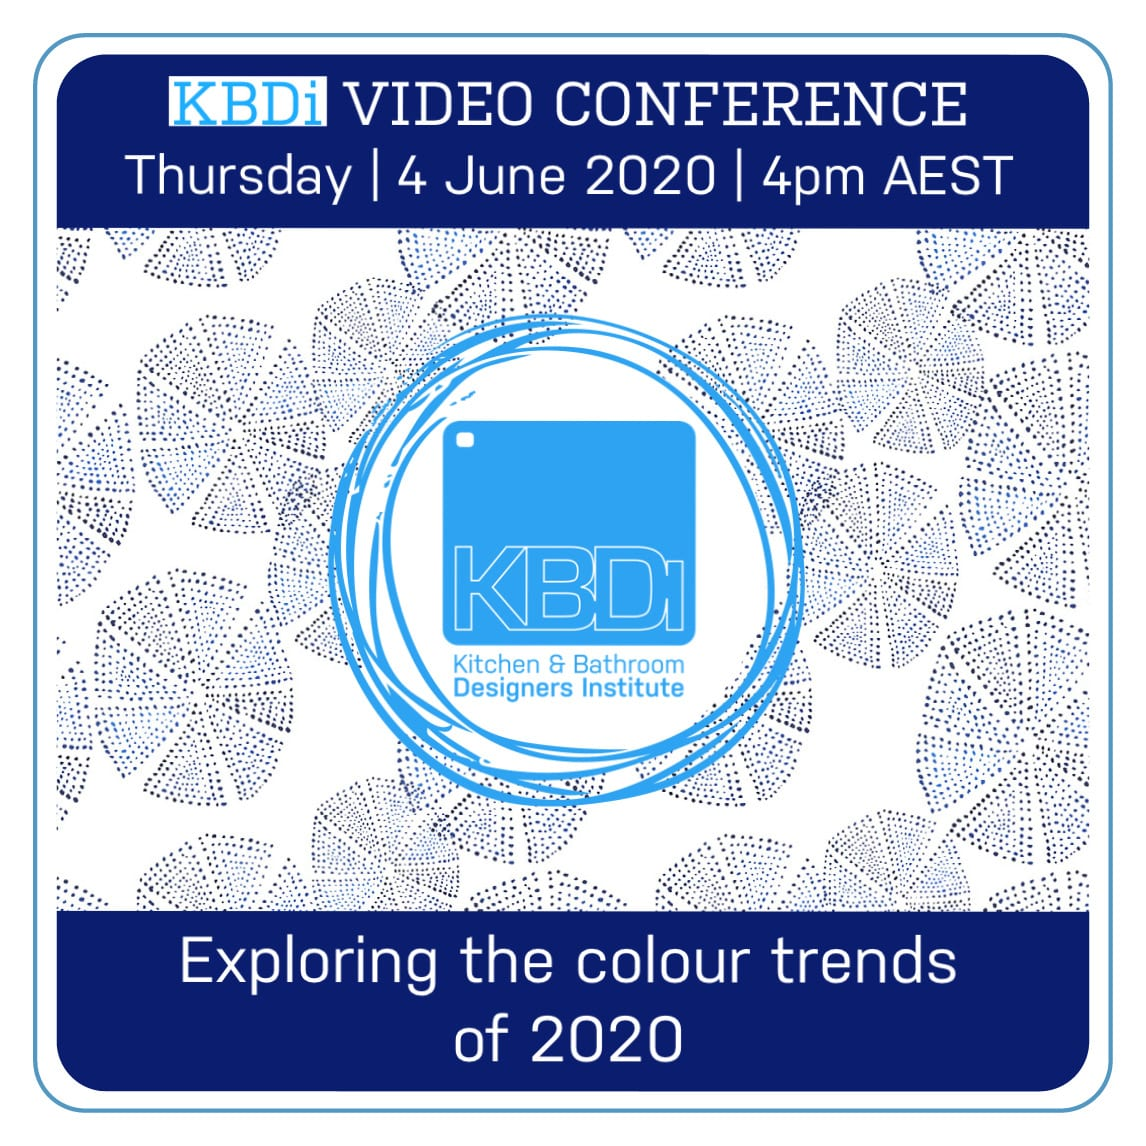 Exploring the colour trends of 2020